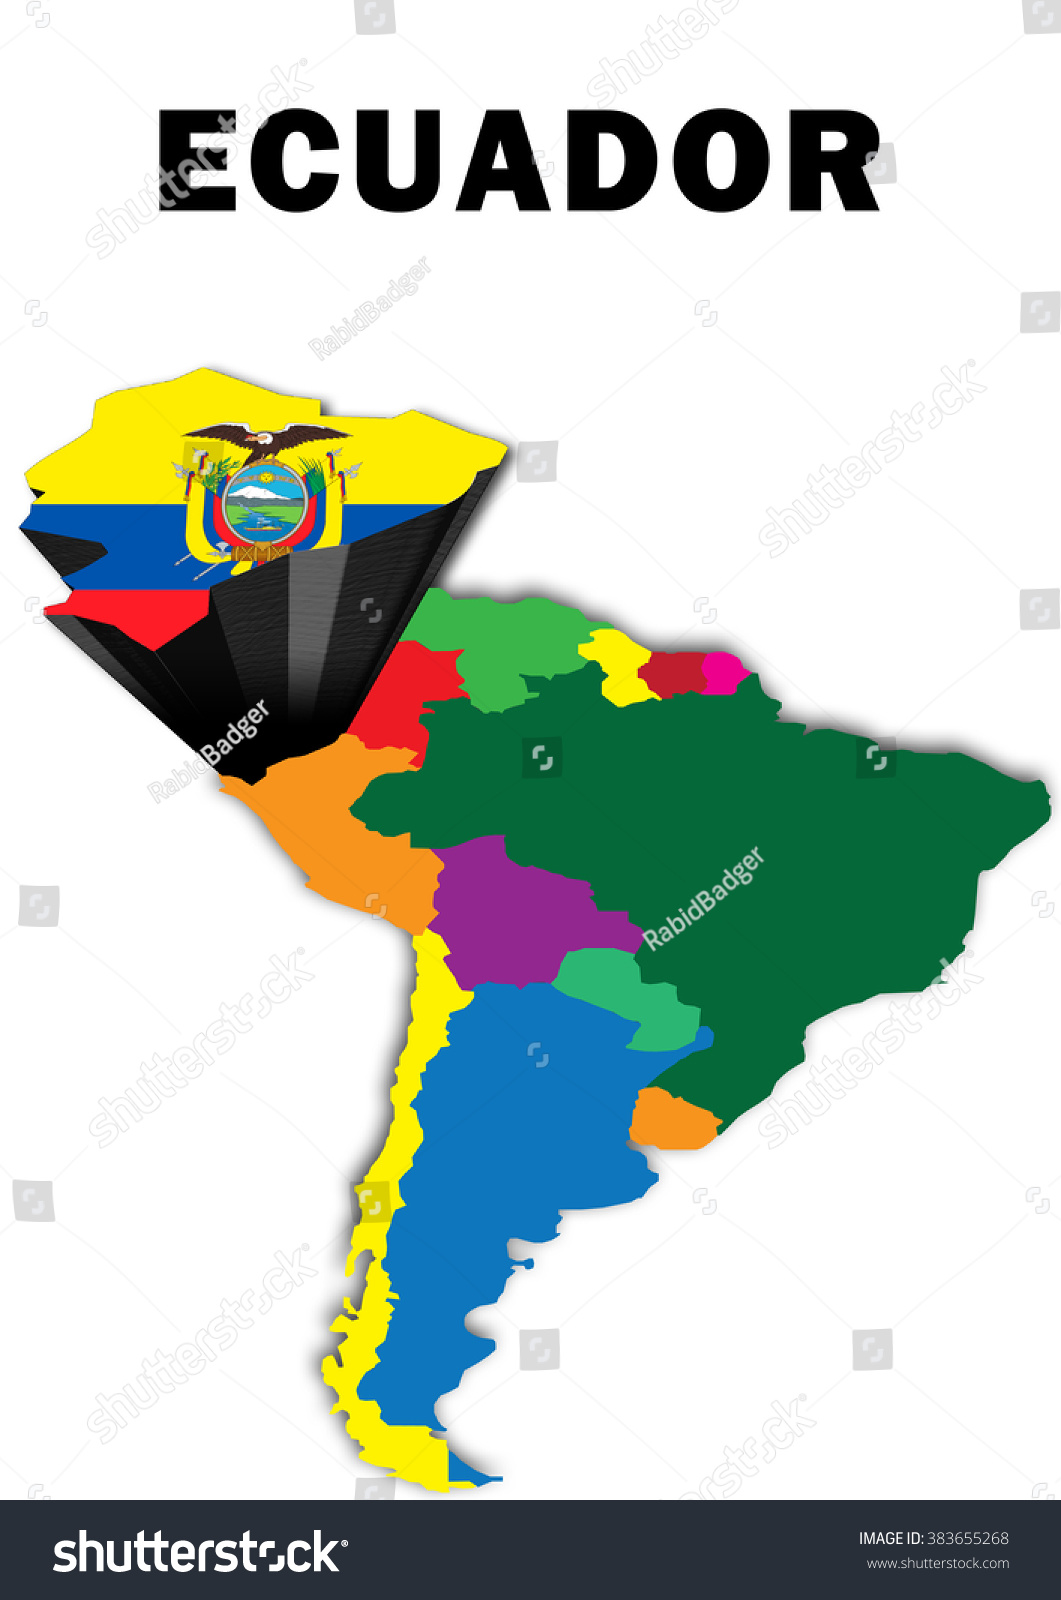 Outline map south america ecuador raised stock illustration outline map south america ecuador raised stock illustration 383655268 shutterstock gumiabroncs Image collections